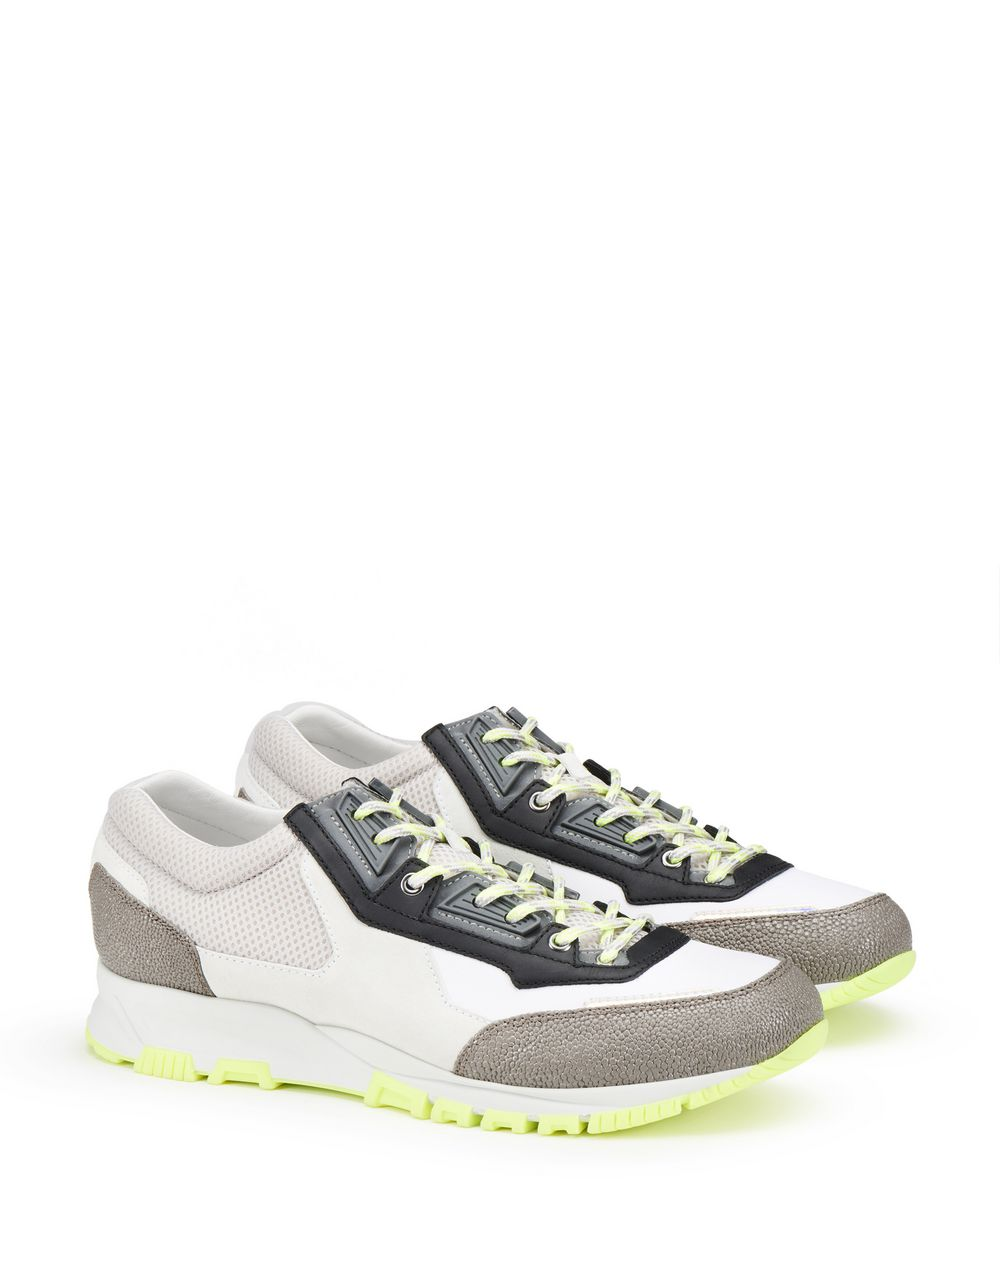 MESH CROSS-TRAINER - Lanvin